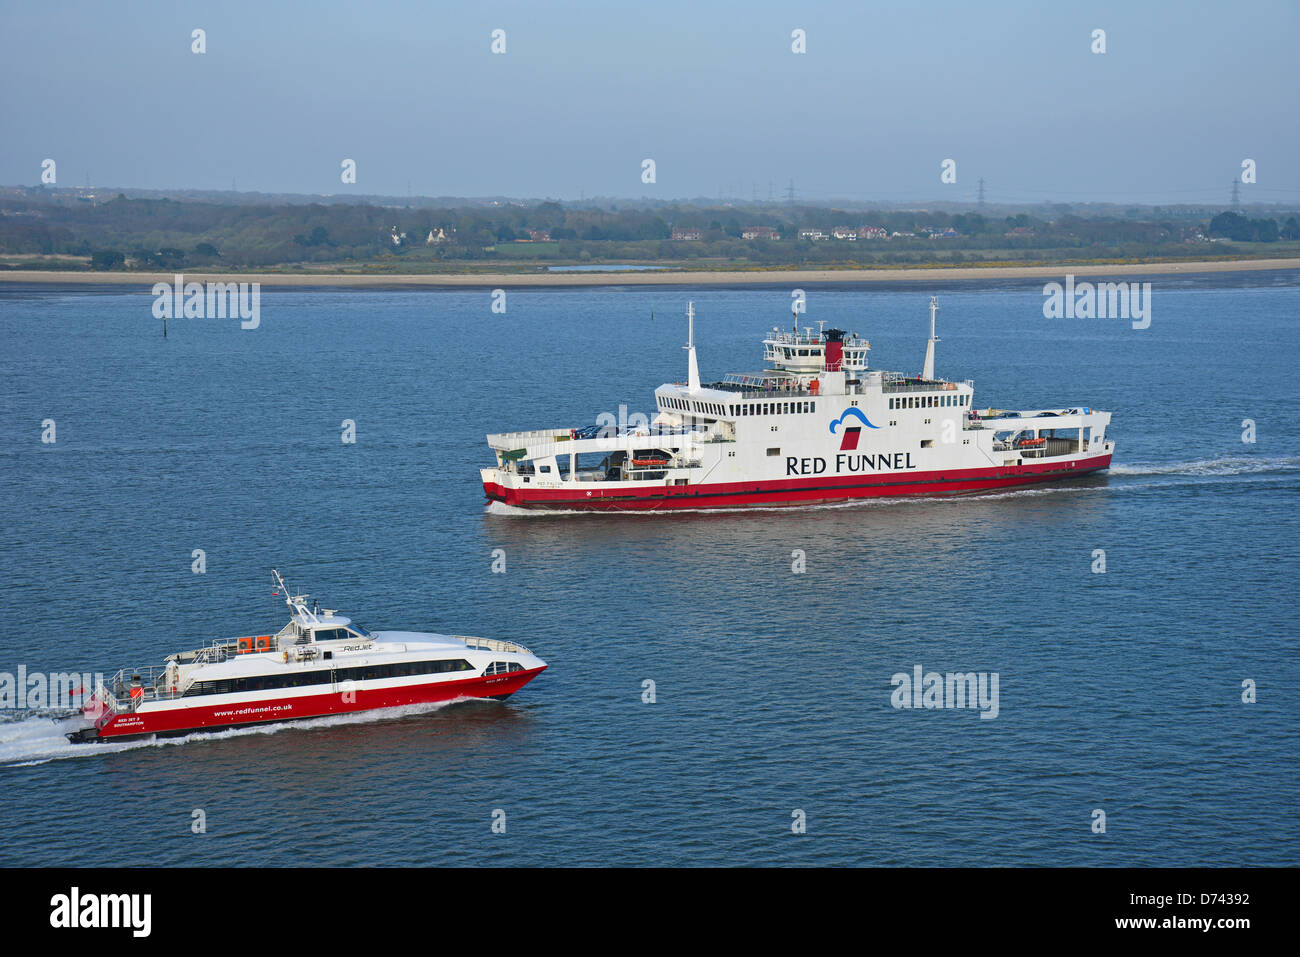 Red Funnel Isle of Wight ferries, Port of Southampton, Southampton, Hampshire, England, United Kingdom - Stock Image